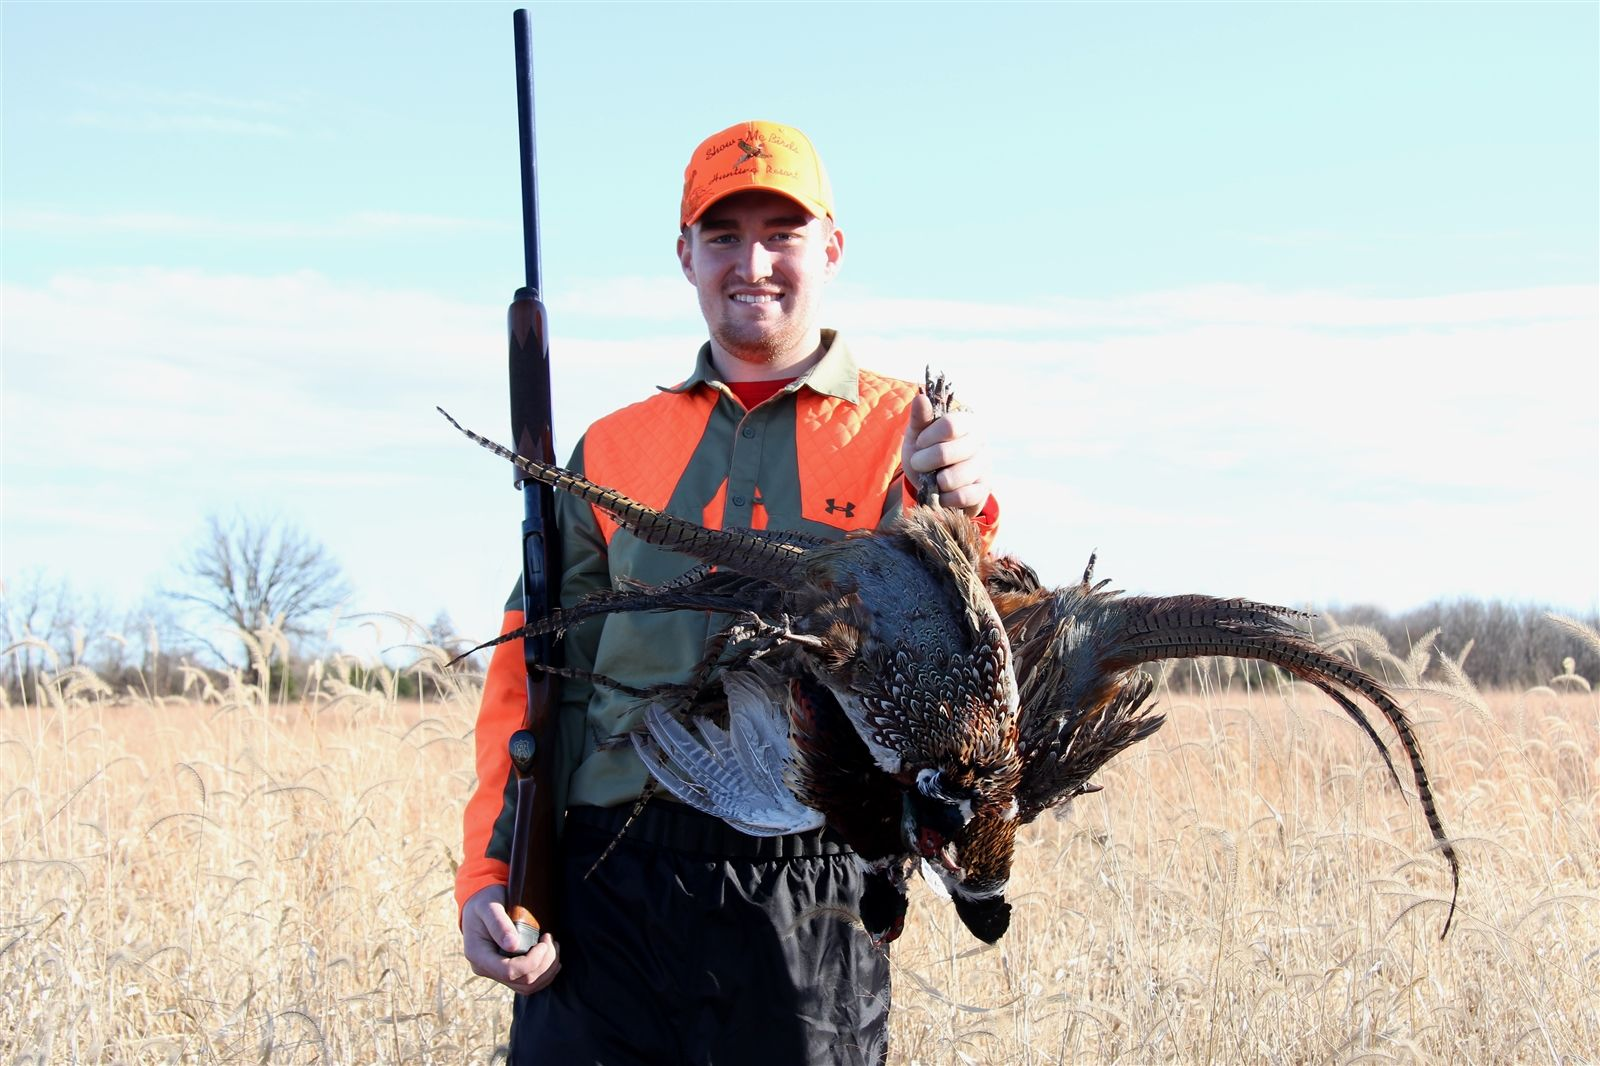 Ryan Phillips of Pendleton, N.Y., chasing roosters in South Kansas over Thanksgiving break.